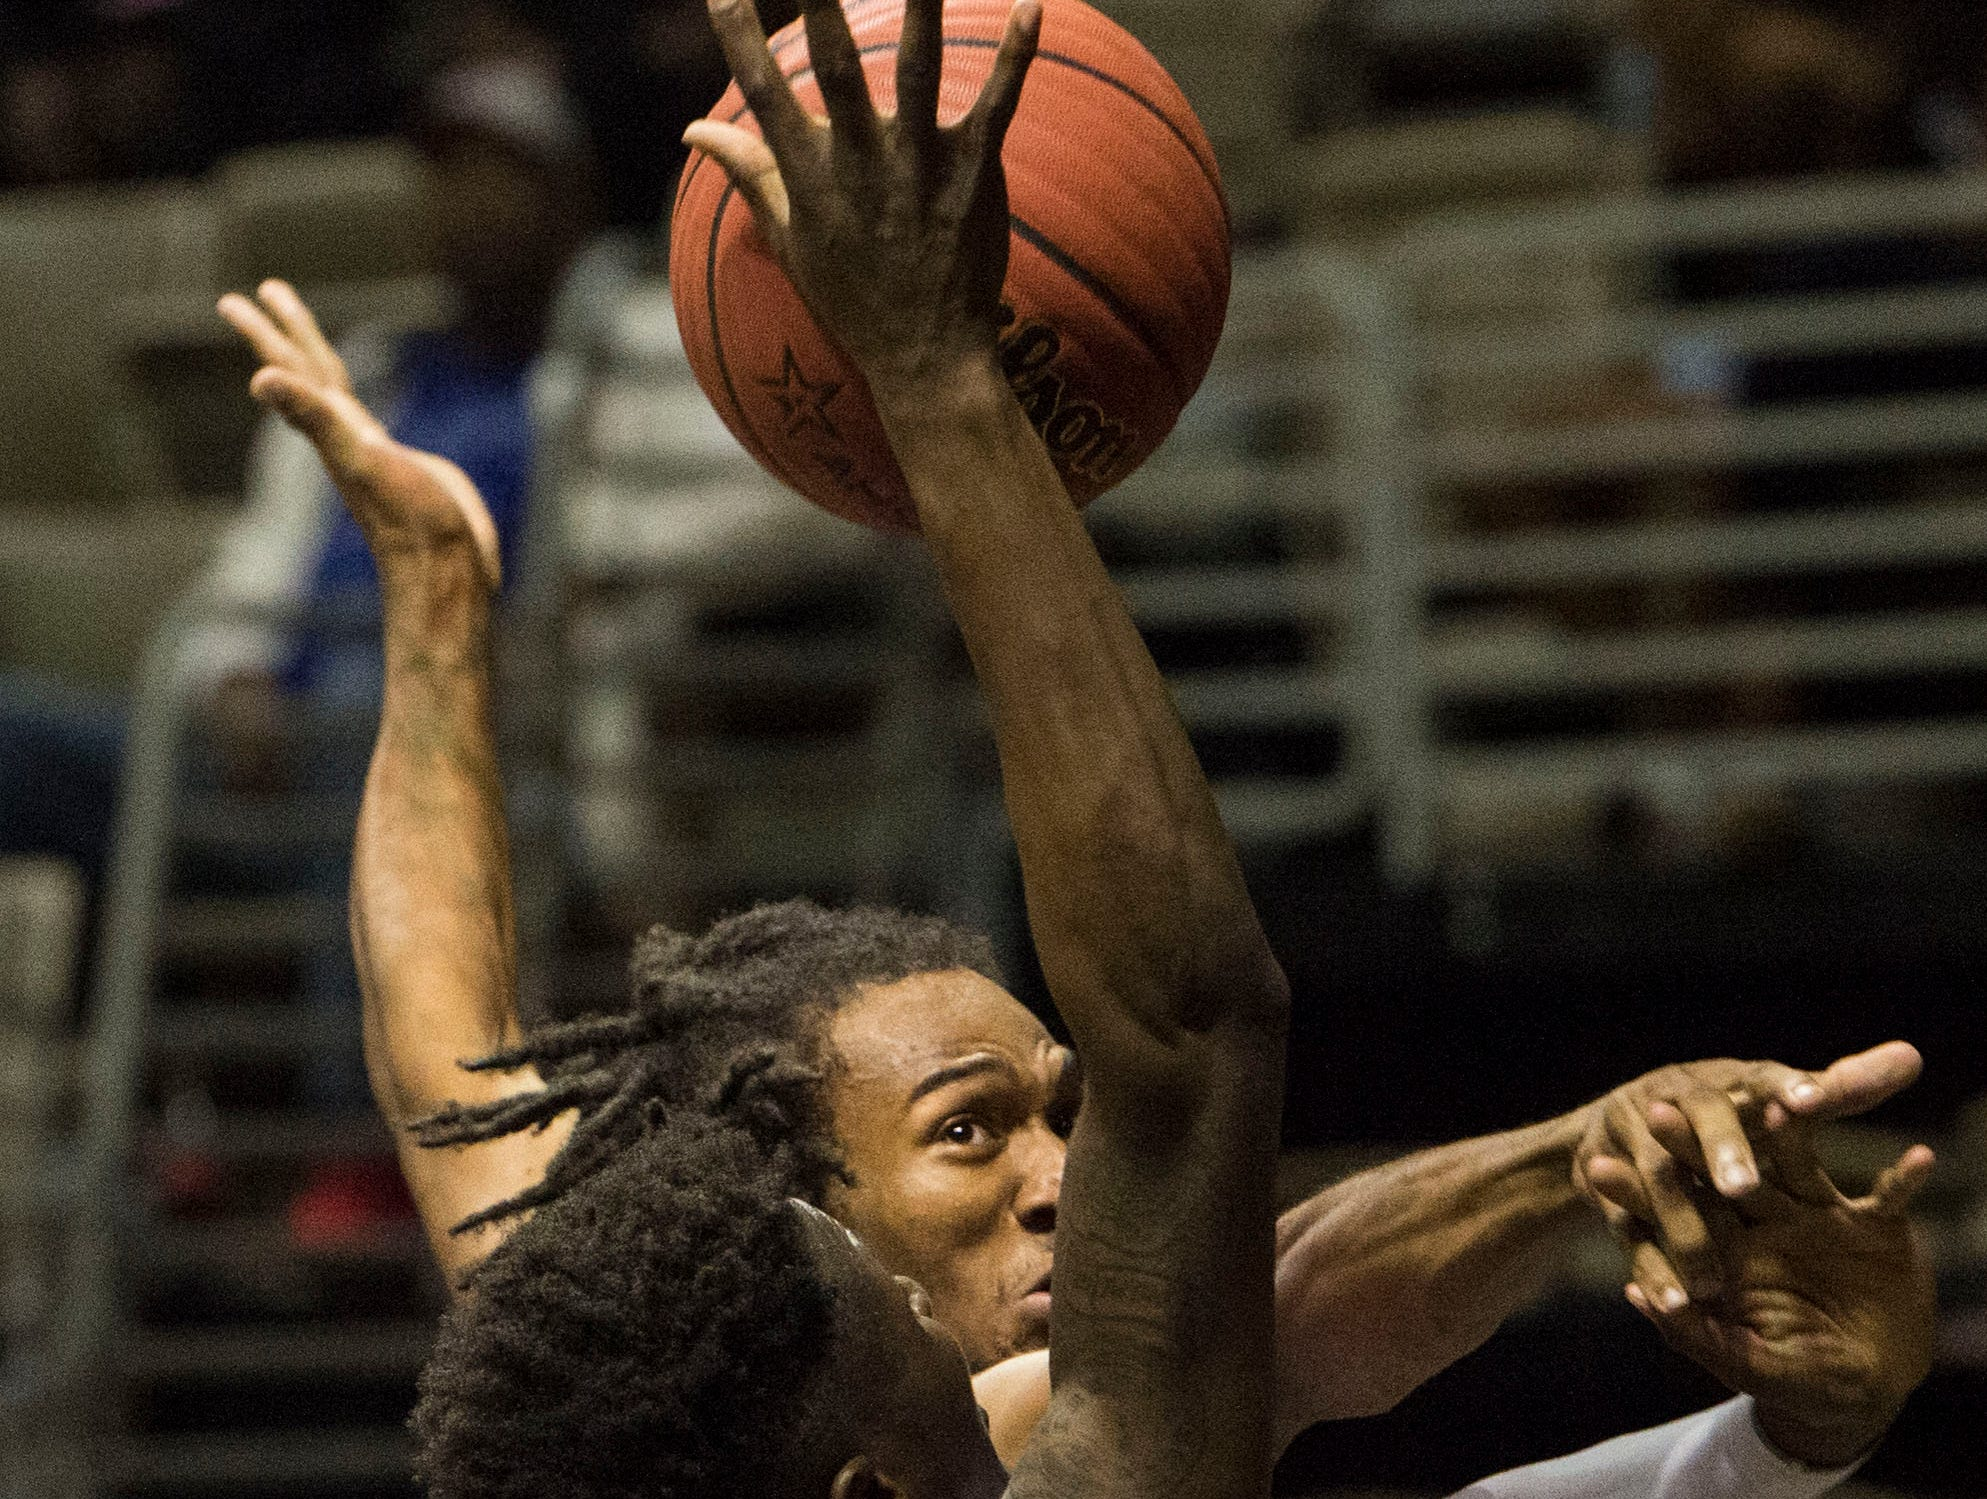 Alabama's Desmond Williams (10) is fouled as he goes up for a layup during the Alabama-Mississippi All-Star game at the Dunn-Oliver Acadome in Montgomery, Ala., on Friday, March 15, 2019. Mississippi All-stars leads the Alabama All-stars 47-39 at halftime.